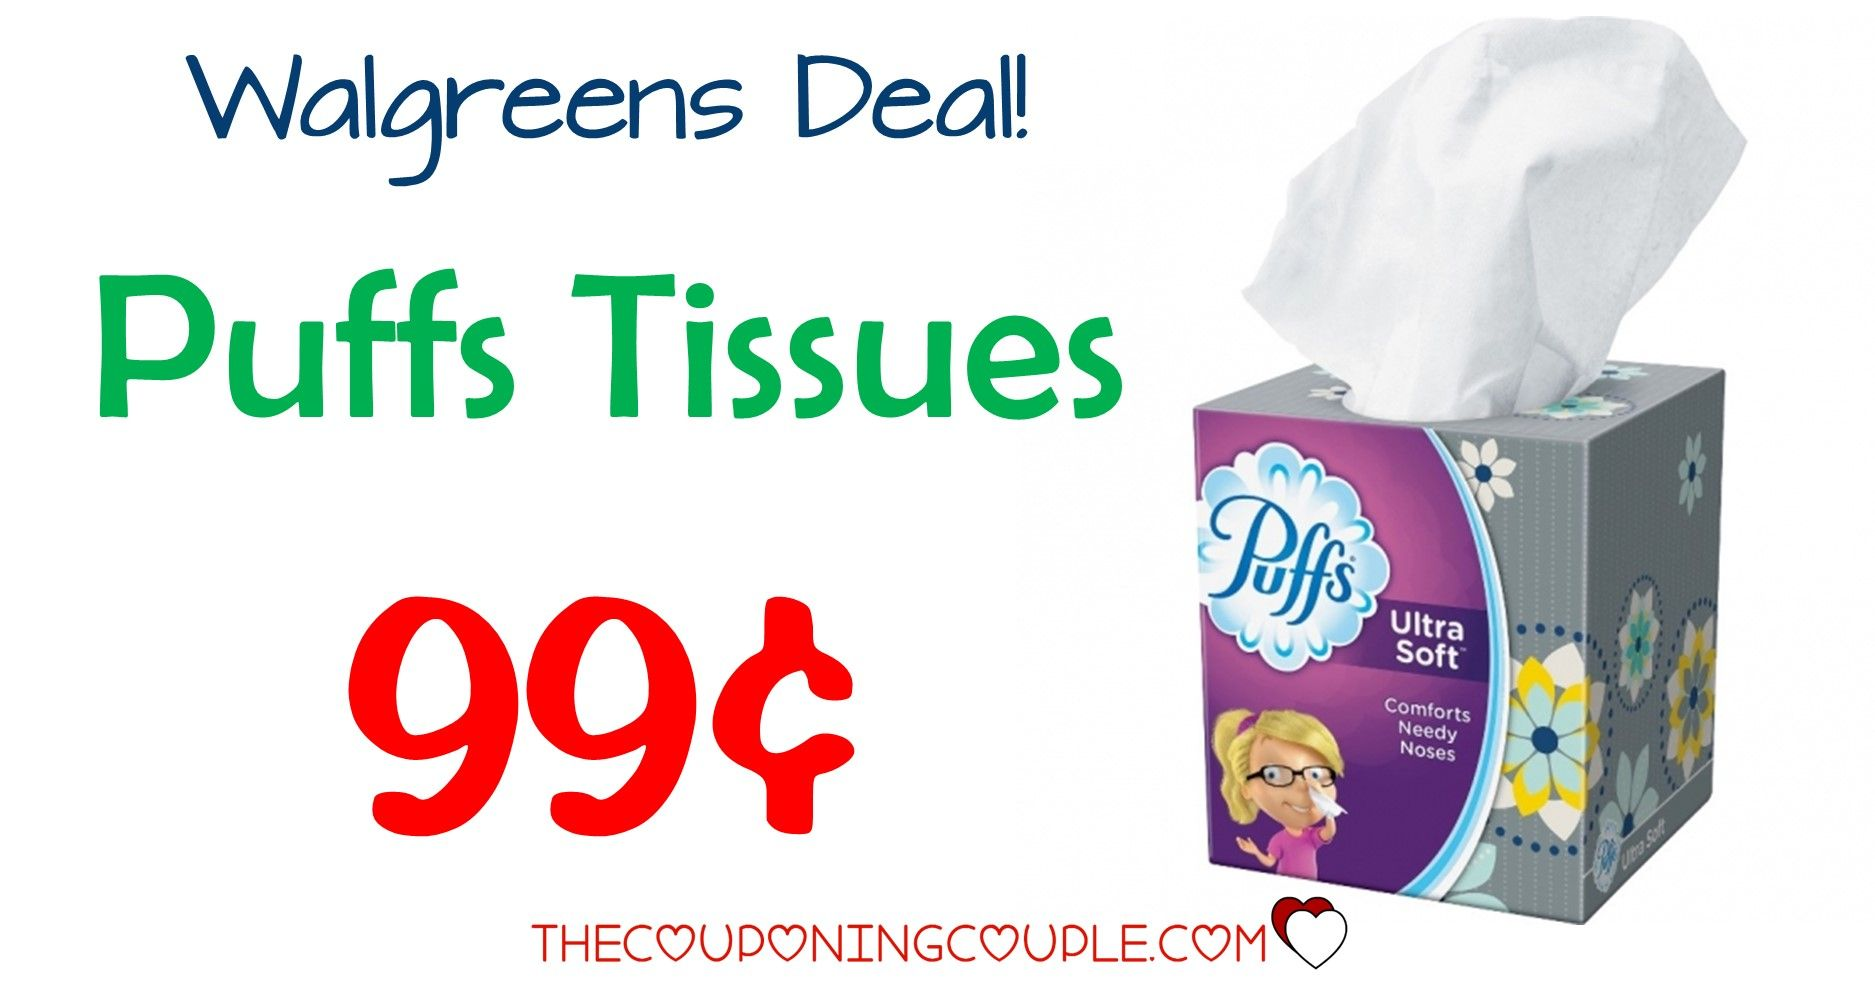 Puffs Facial Tissues Walgreens For 0 99 Facial Tissues Walgreens Puffs Tissue